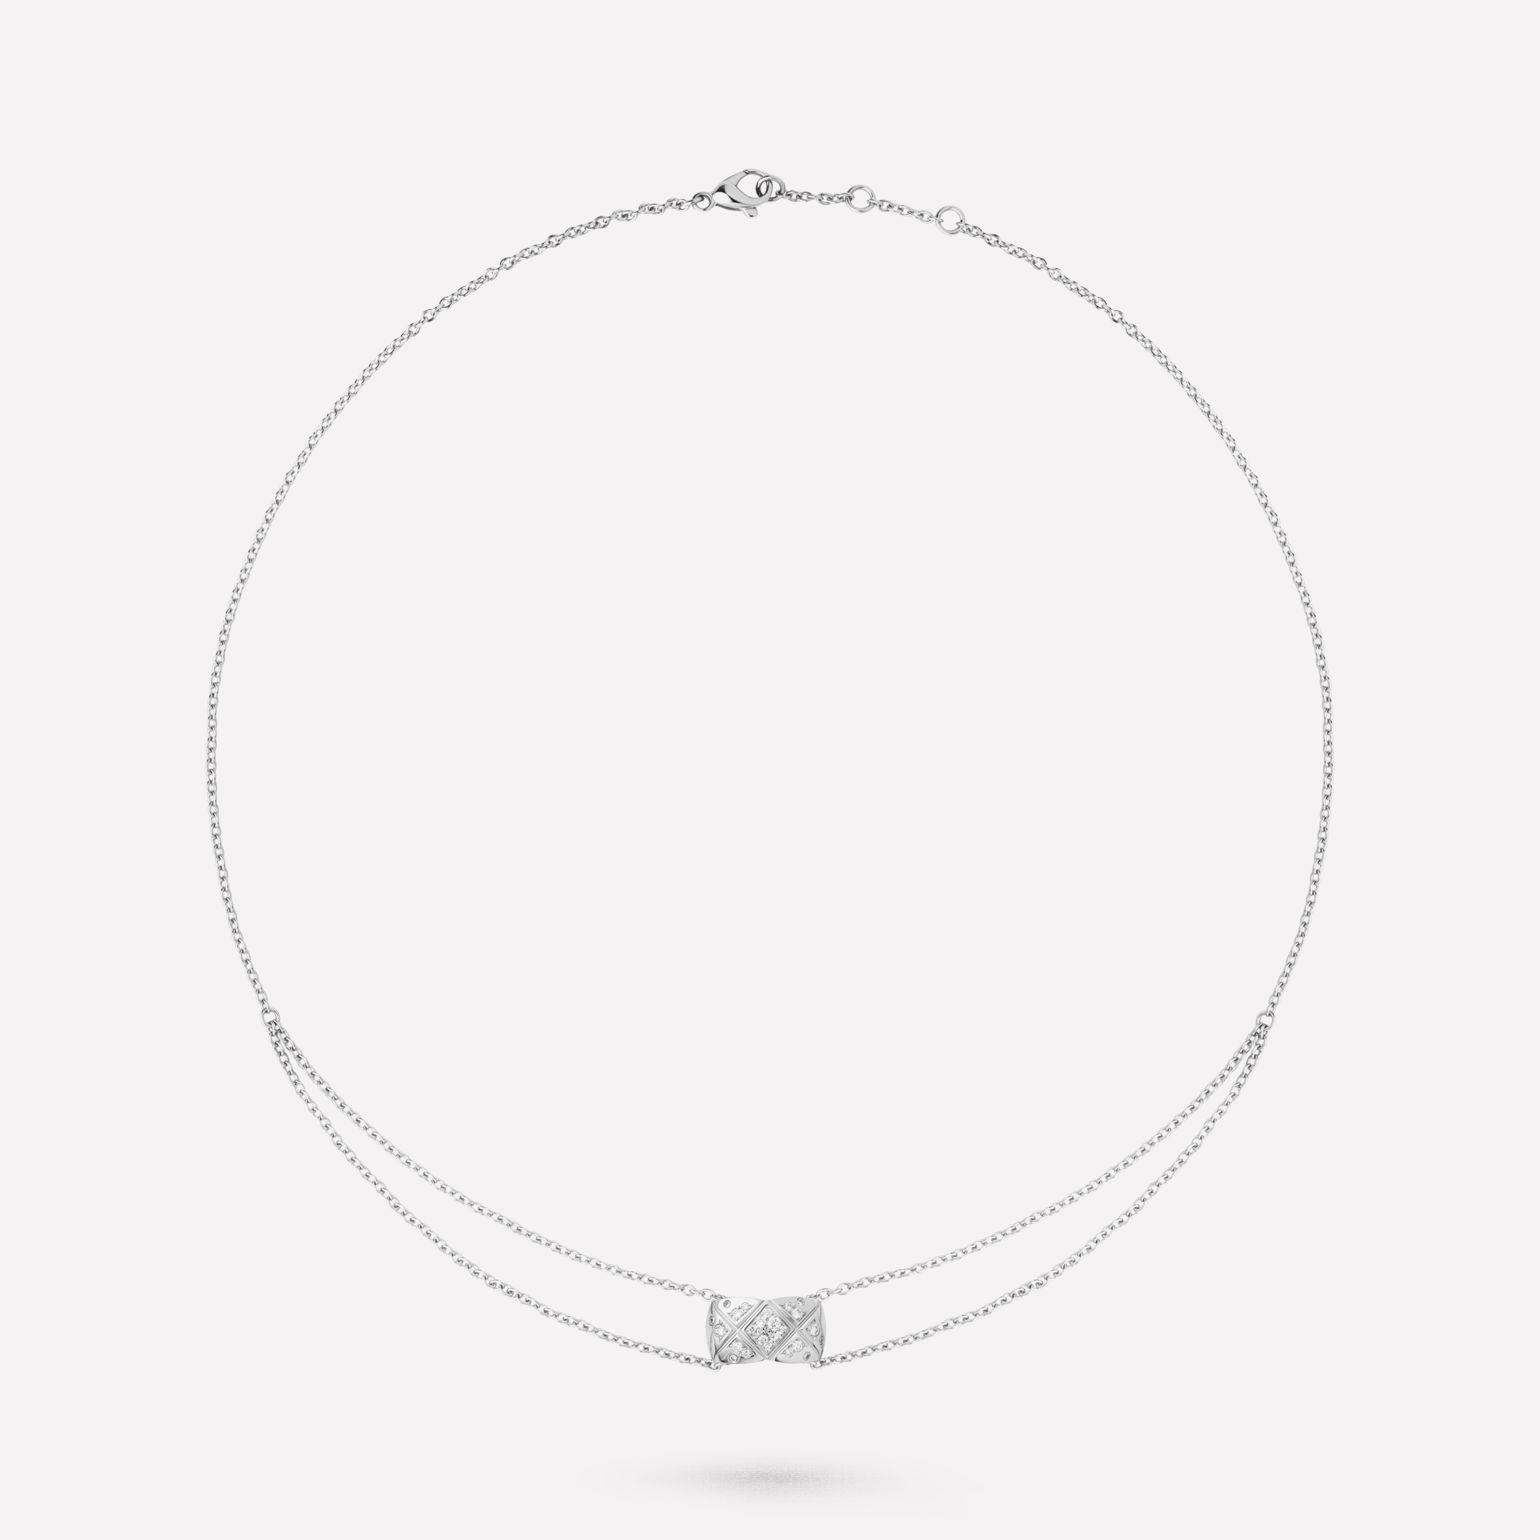 Coco Crush necklace Quilted motif necklace in 18K white gold and diamonds